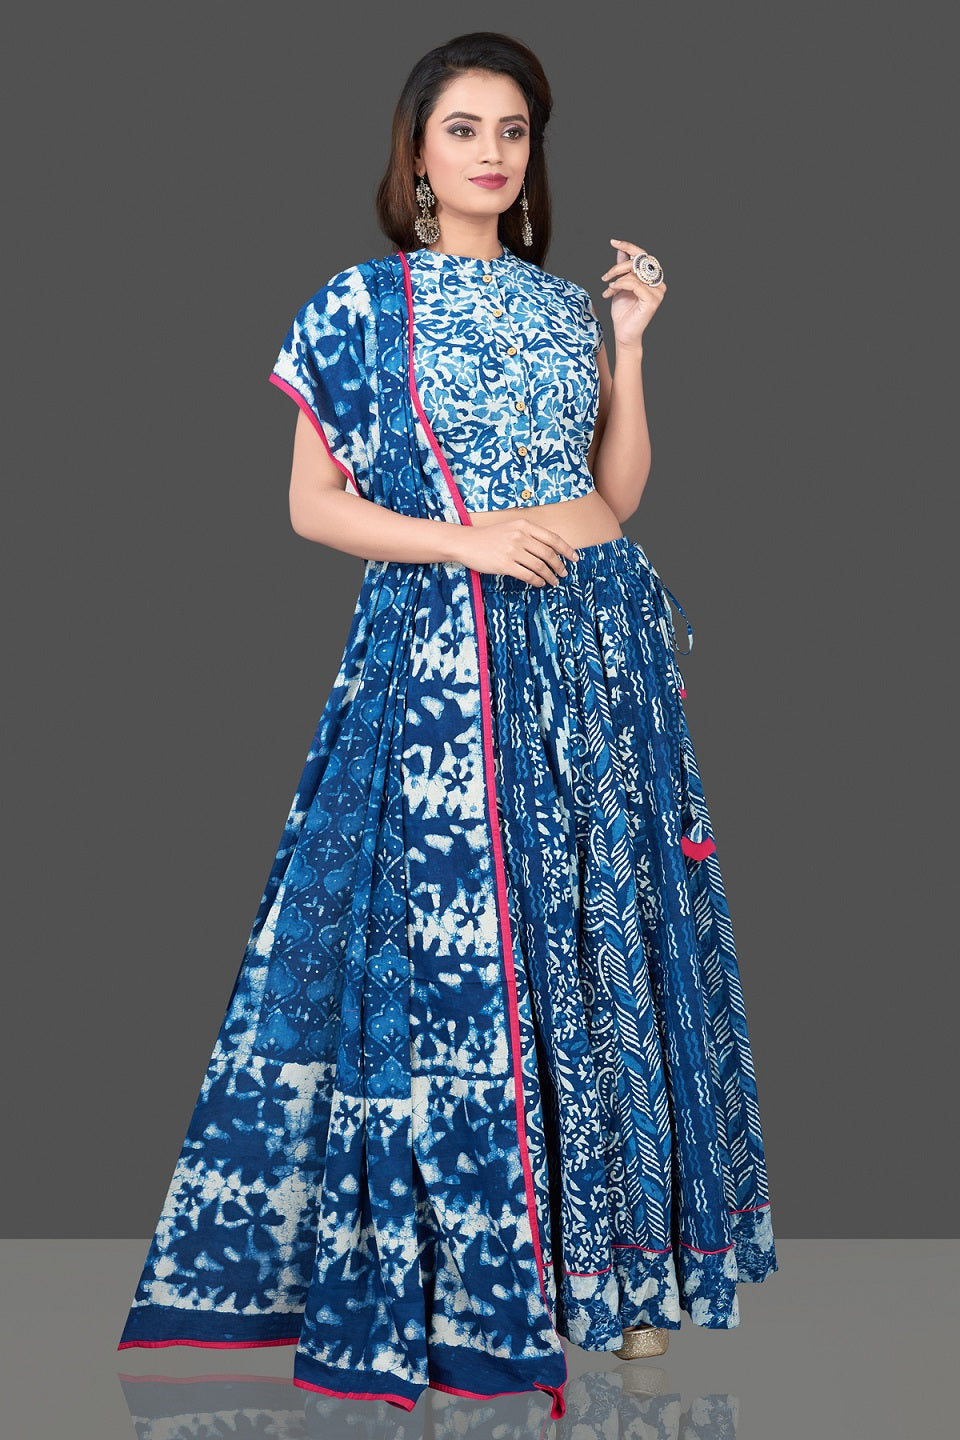 Buy beautiful blue and white Bagru block printed skirt set online in USA with dupatta. Shop designer Indian clothing, lehengas, designer Anarkali, gharara suits, Indian dresses in USA from Pure Elegance Indian fashions store for parties and special occasions.-full view